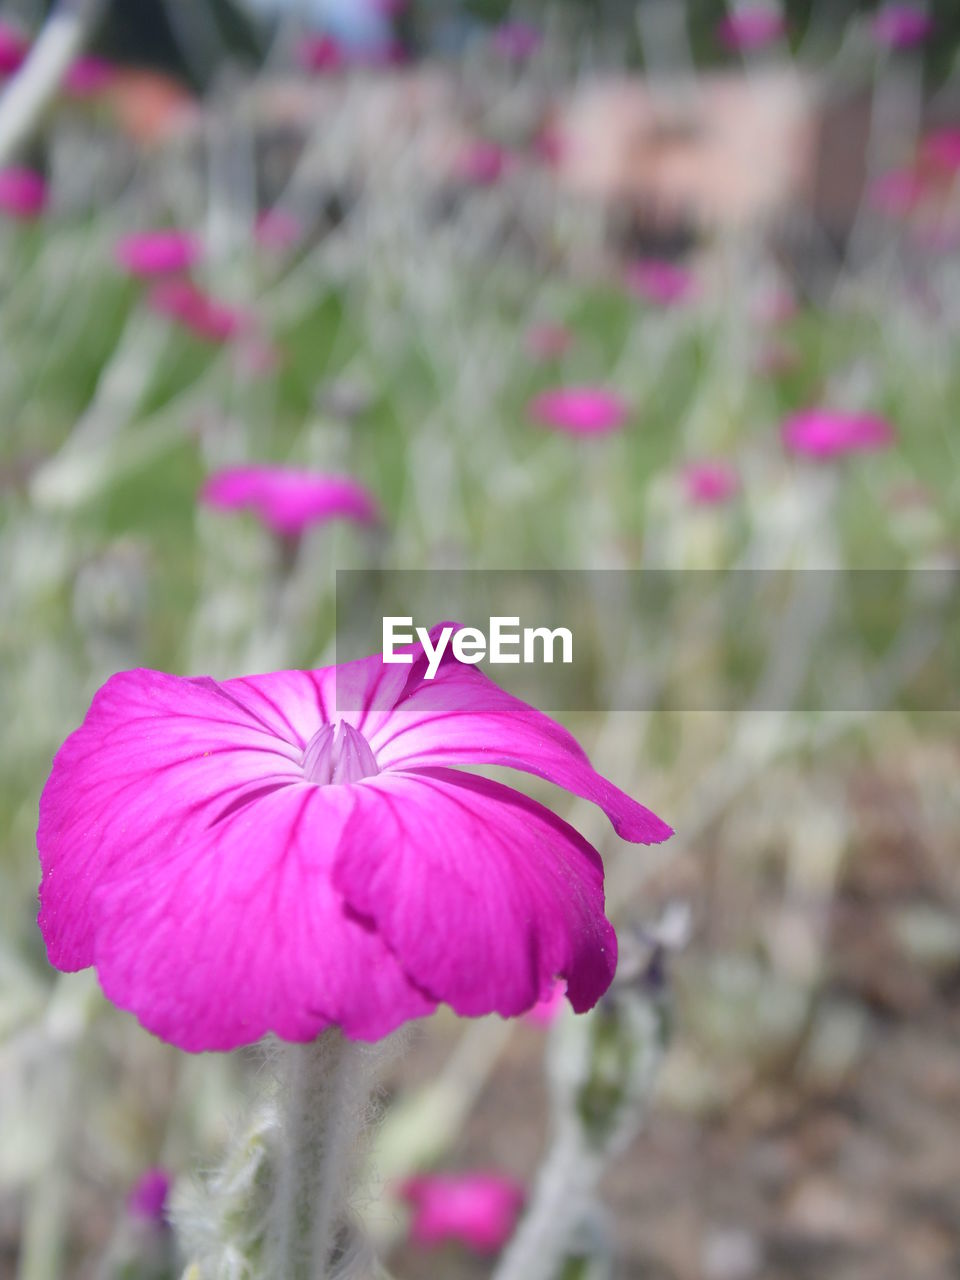 flower, pink color, fragility, petal, focus on foreground, growth, flower head, beauty in nature, blooming, nature, freshness, plant, outdoors, day, close-up, purple, no people, petunia, eastern purple coneflower, periwinkle